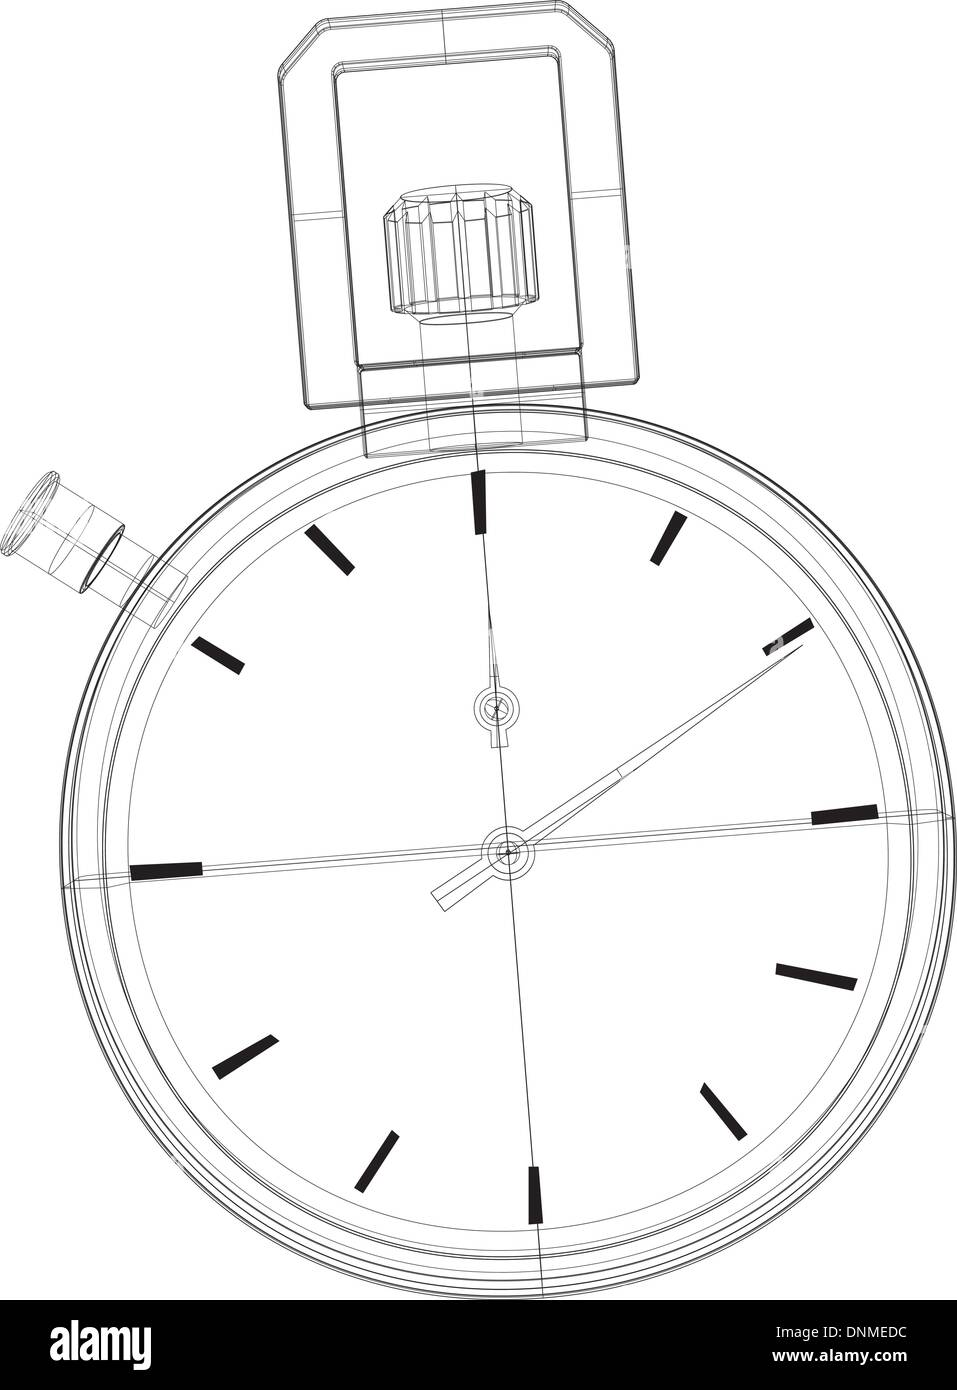 Illustration of stopwatch wireframe line drawing front view. - Stock Image